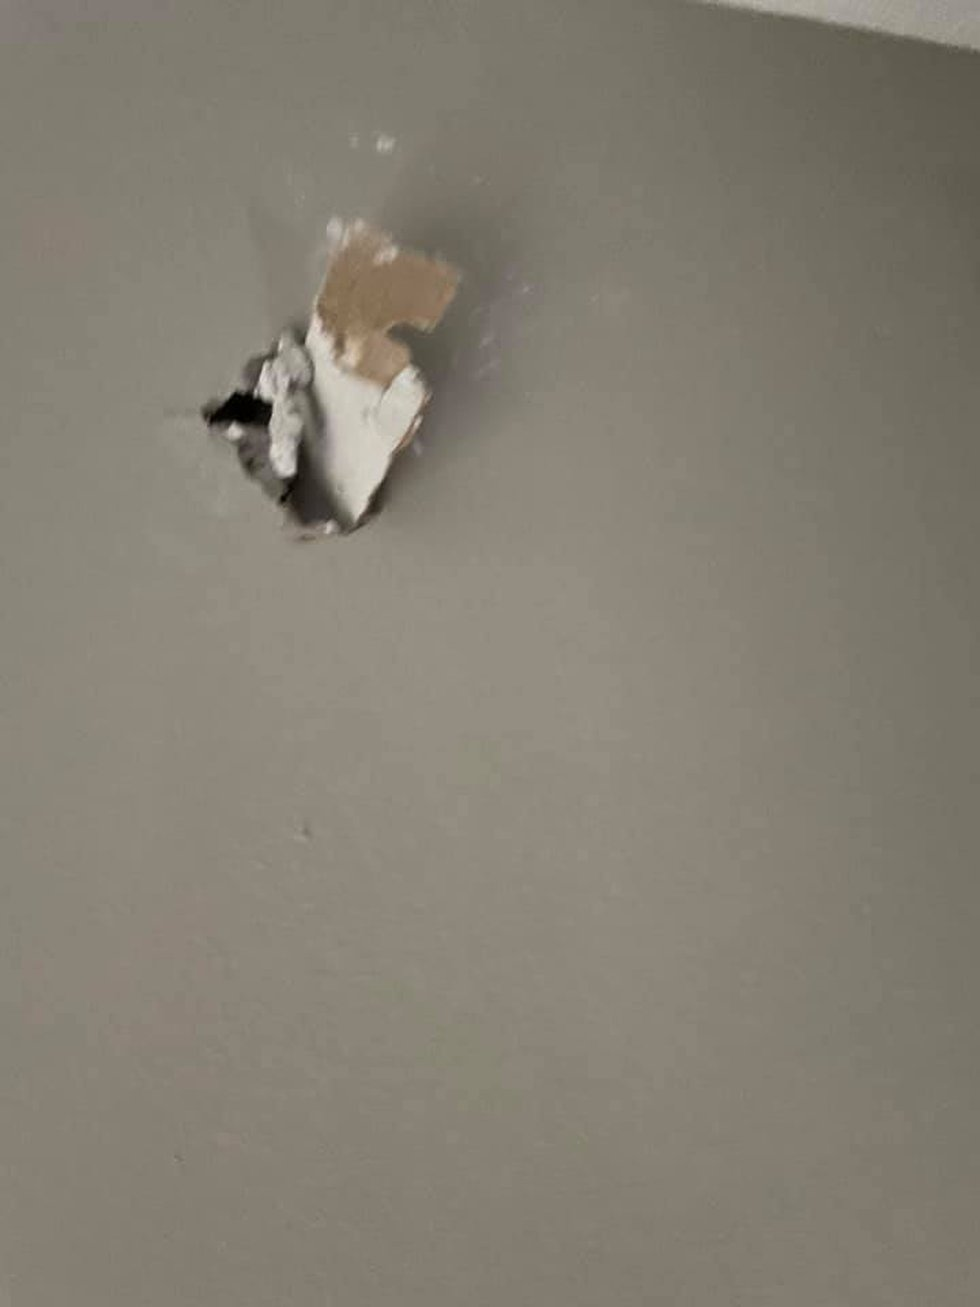 Nails and other debris flew into a wall across the room when lightning struck a home in Wynne,...